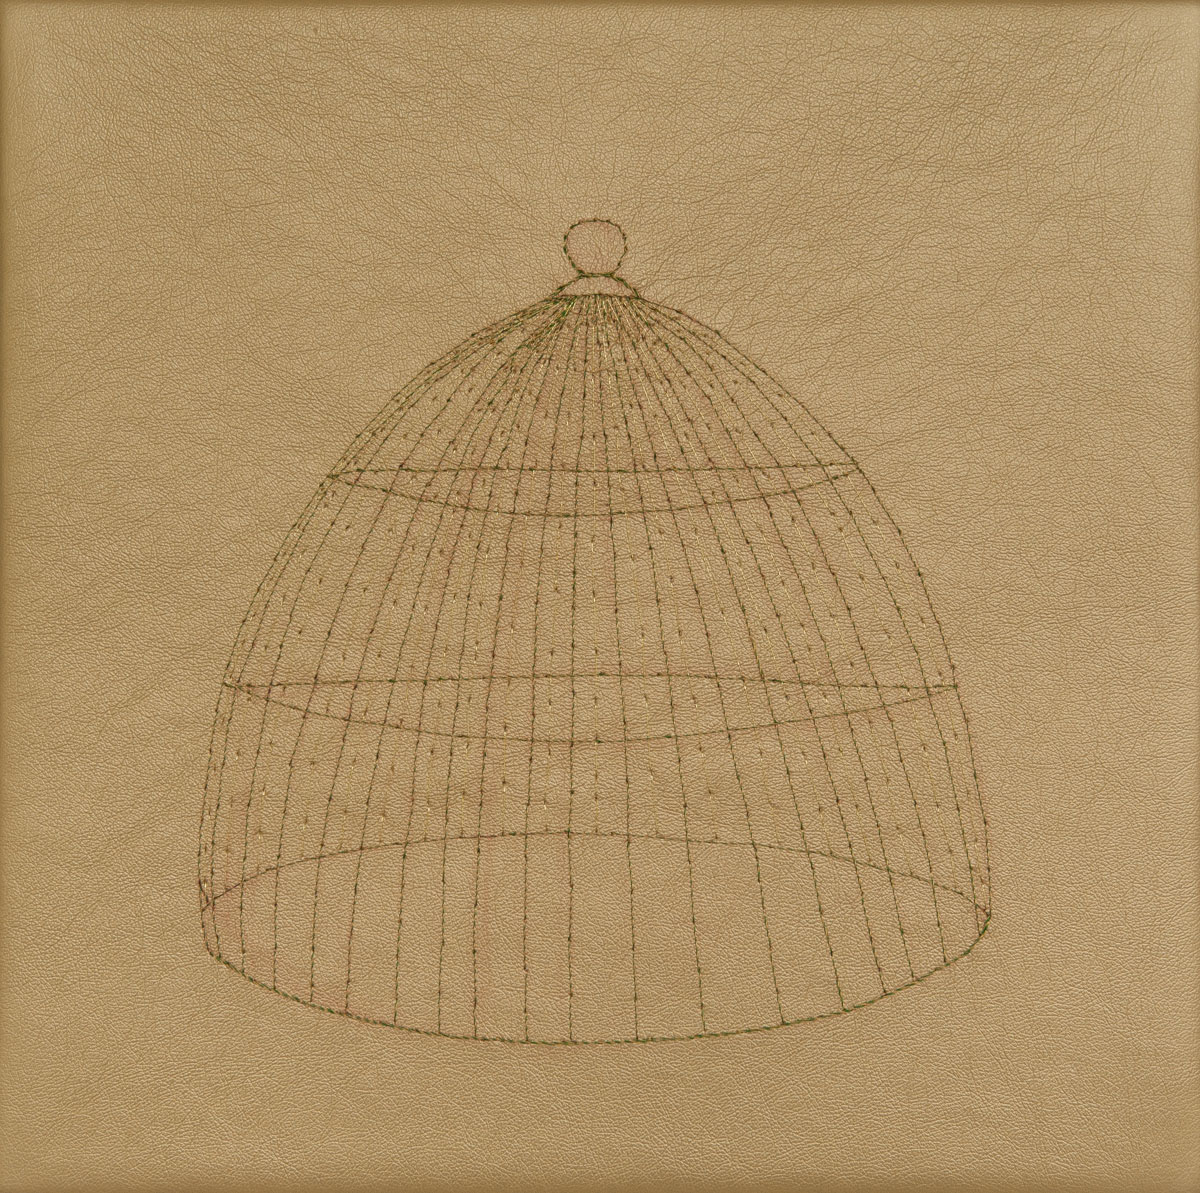 Bird Cage, hand stitching on gold vinyl, 10in x 10in, 2013